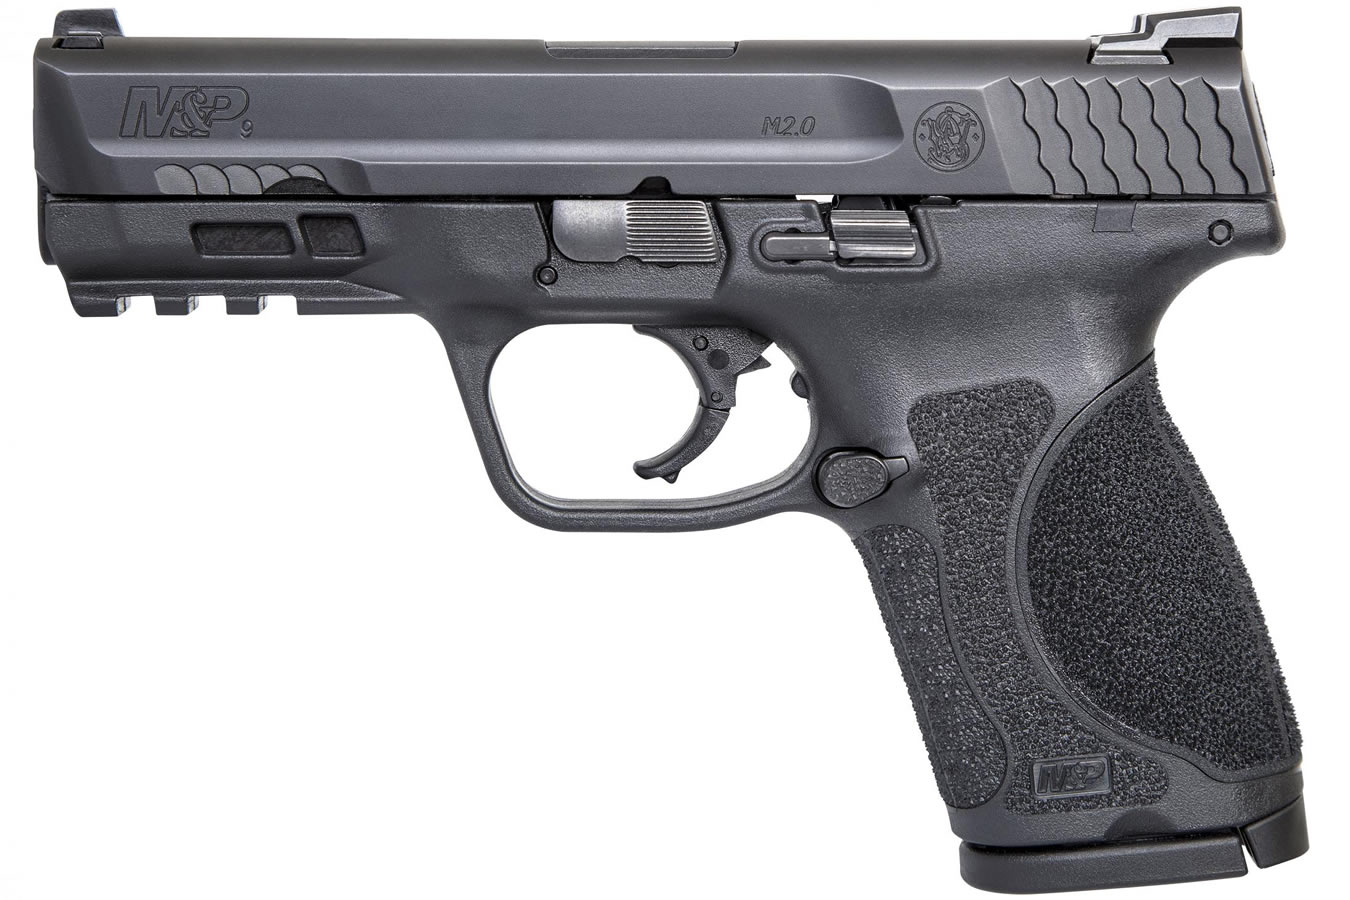 No. 10 Best Selling: SMITH AND WESSON MP9 M2.0 COMPACT 9MM W/O THUMB SAFETY